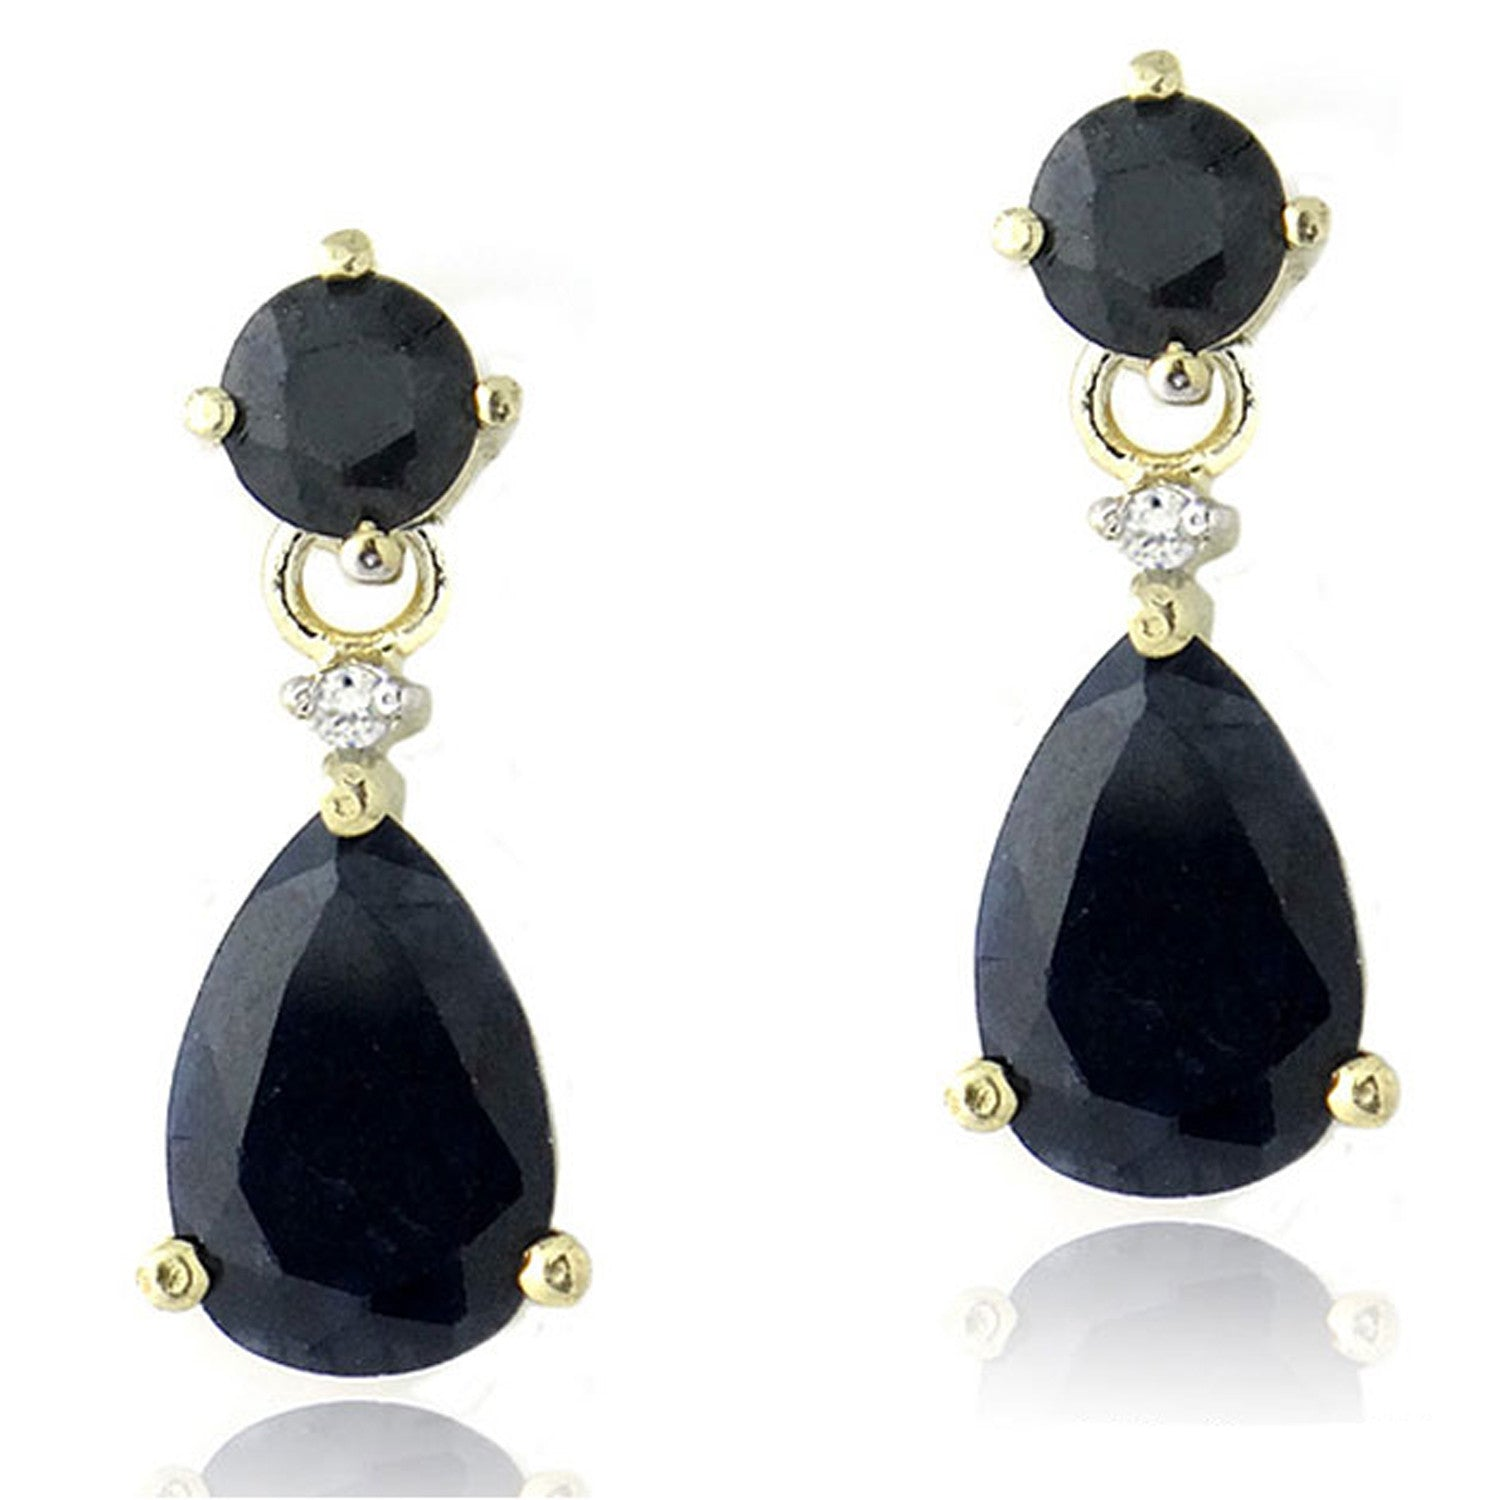 Diamond & Gemstone Accent Butterfly Clasp Teardrop Earrings - Gold / Sapphire